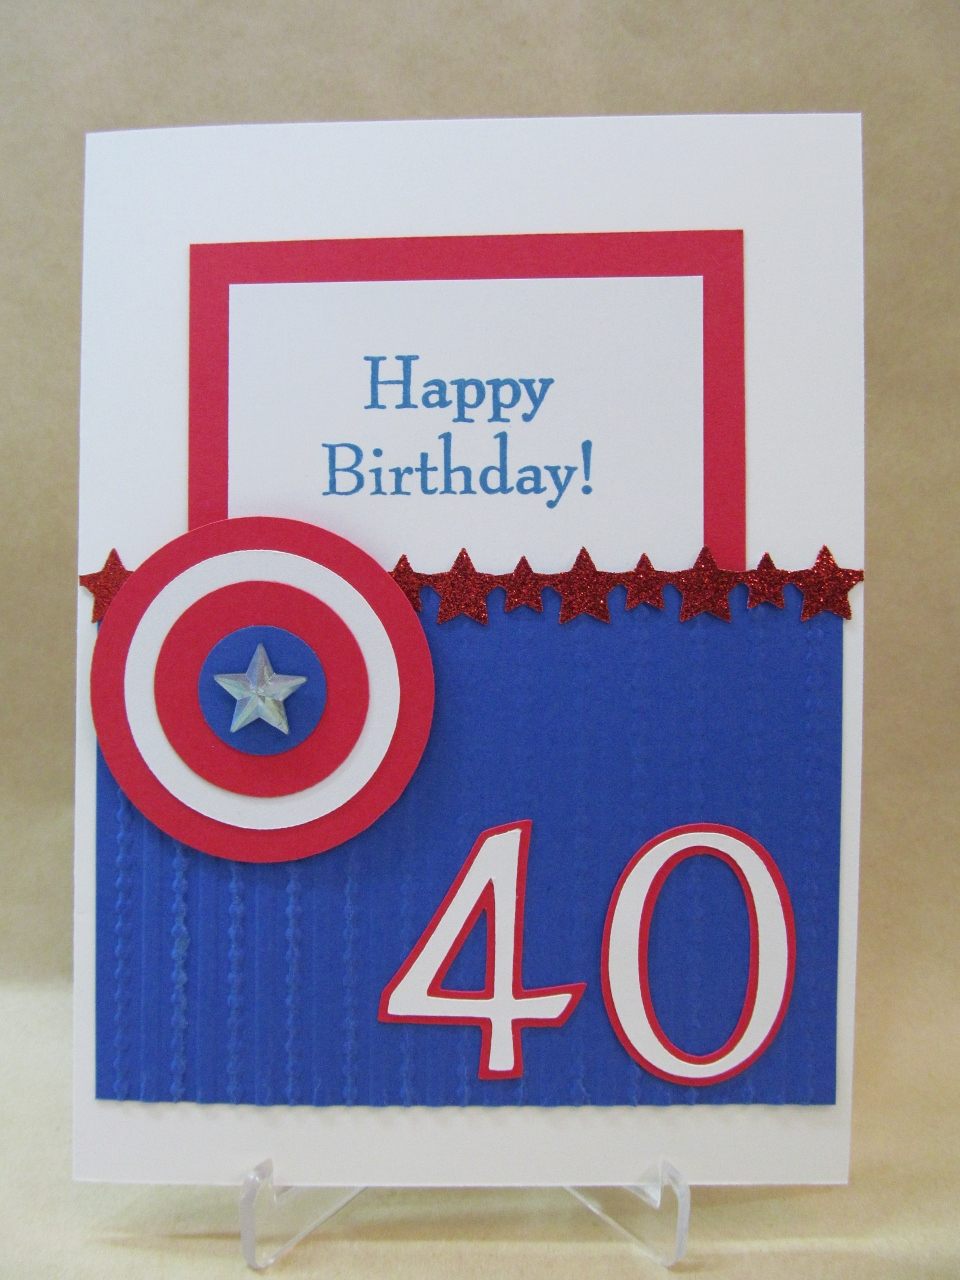 40 Birthday Card Ideas Savvy Handmade Cards Happy 40th Birthday Card